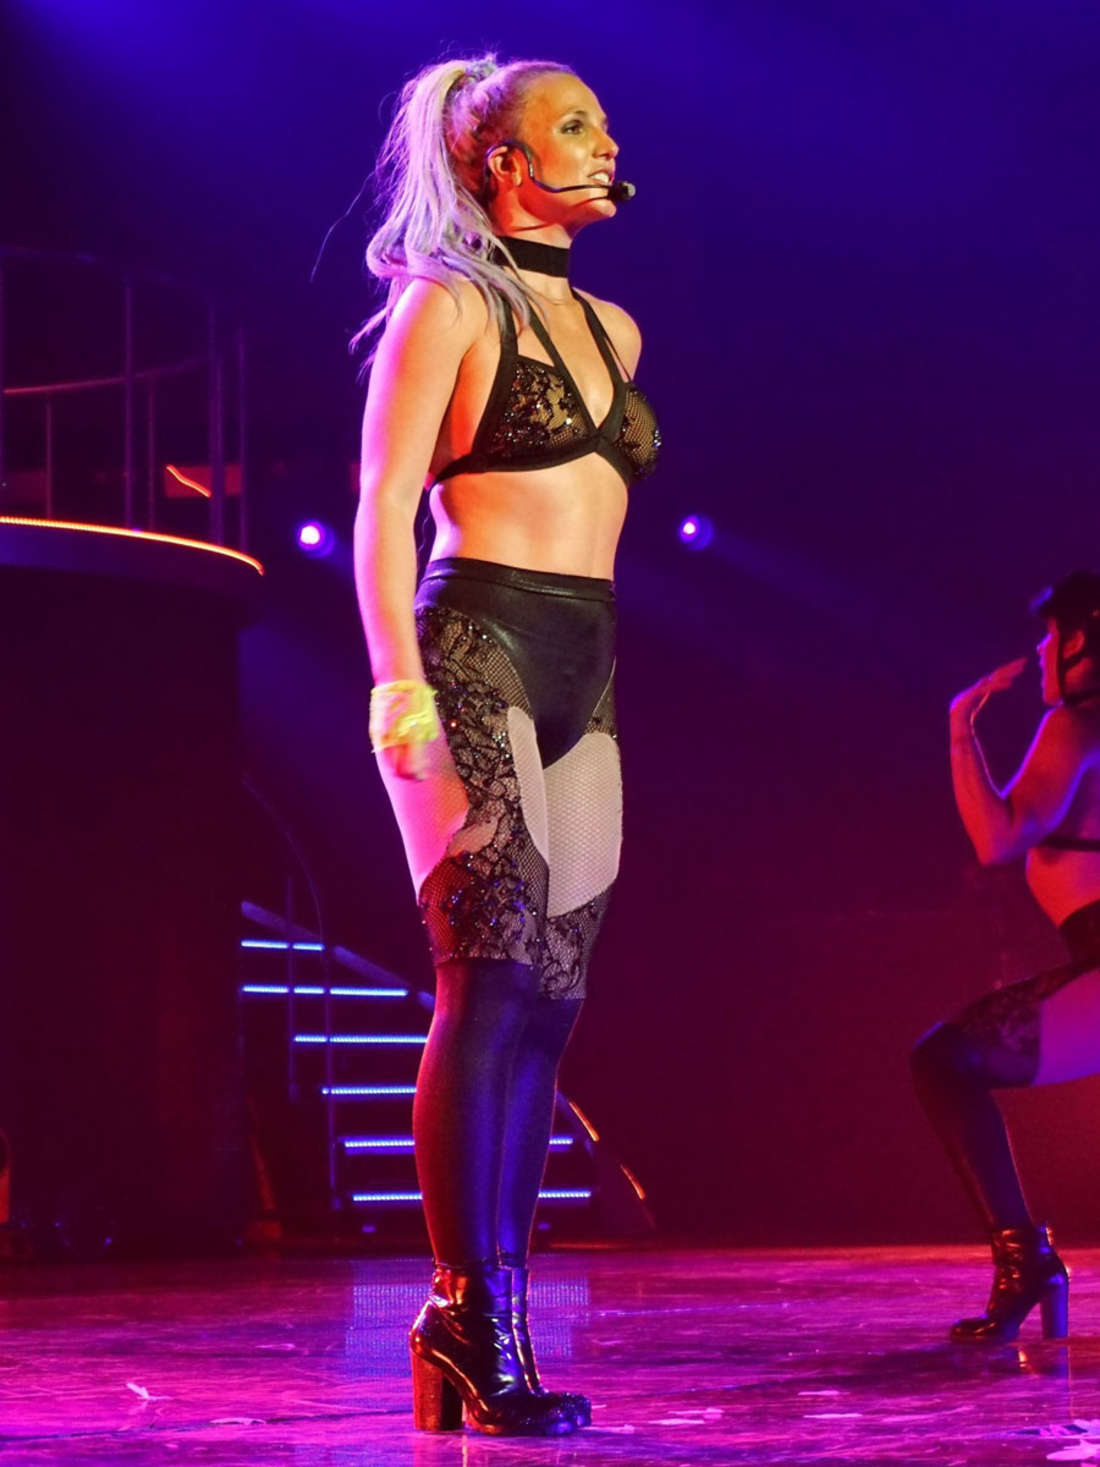 Britney Piece of Me show